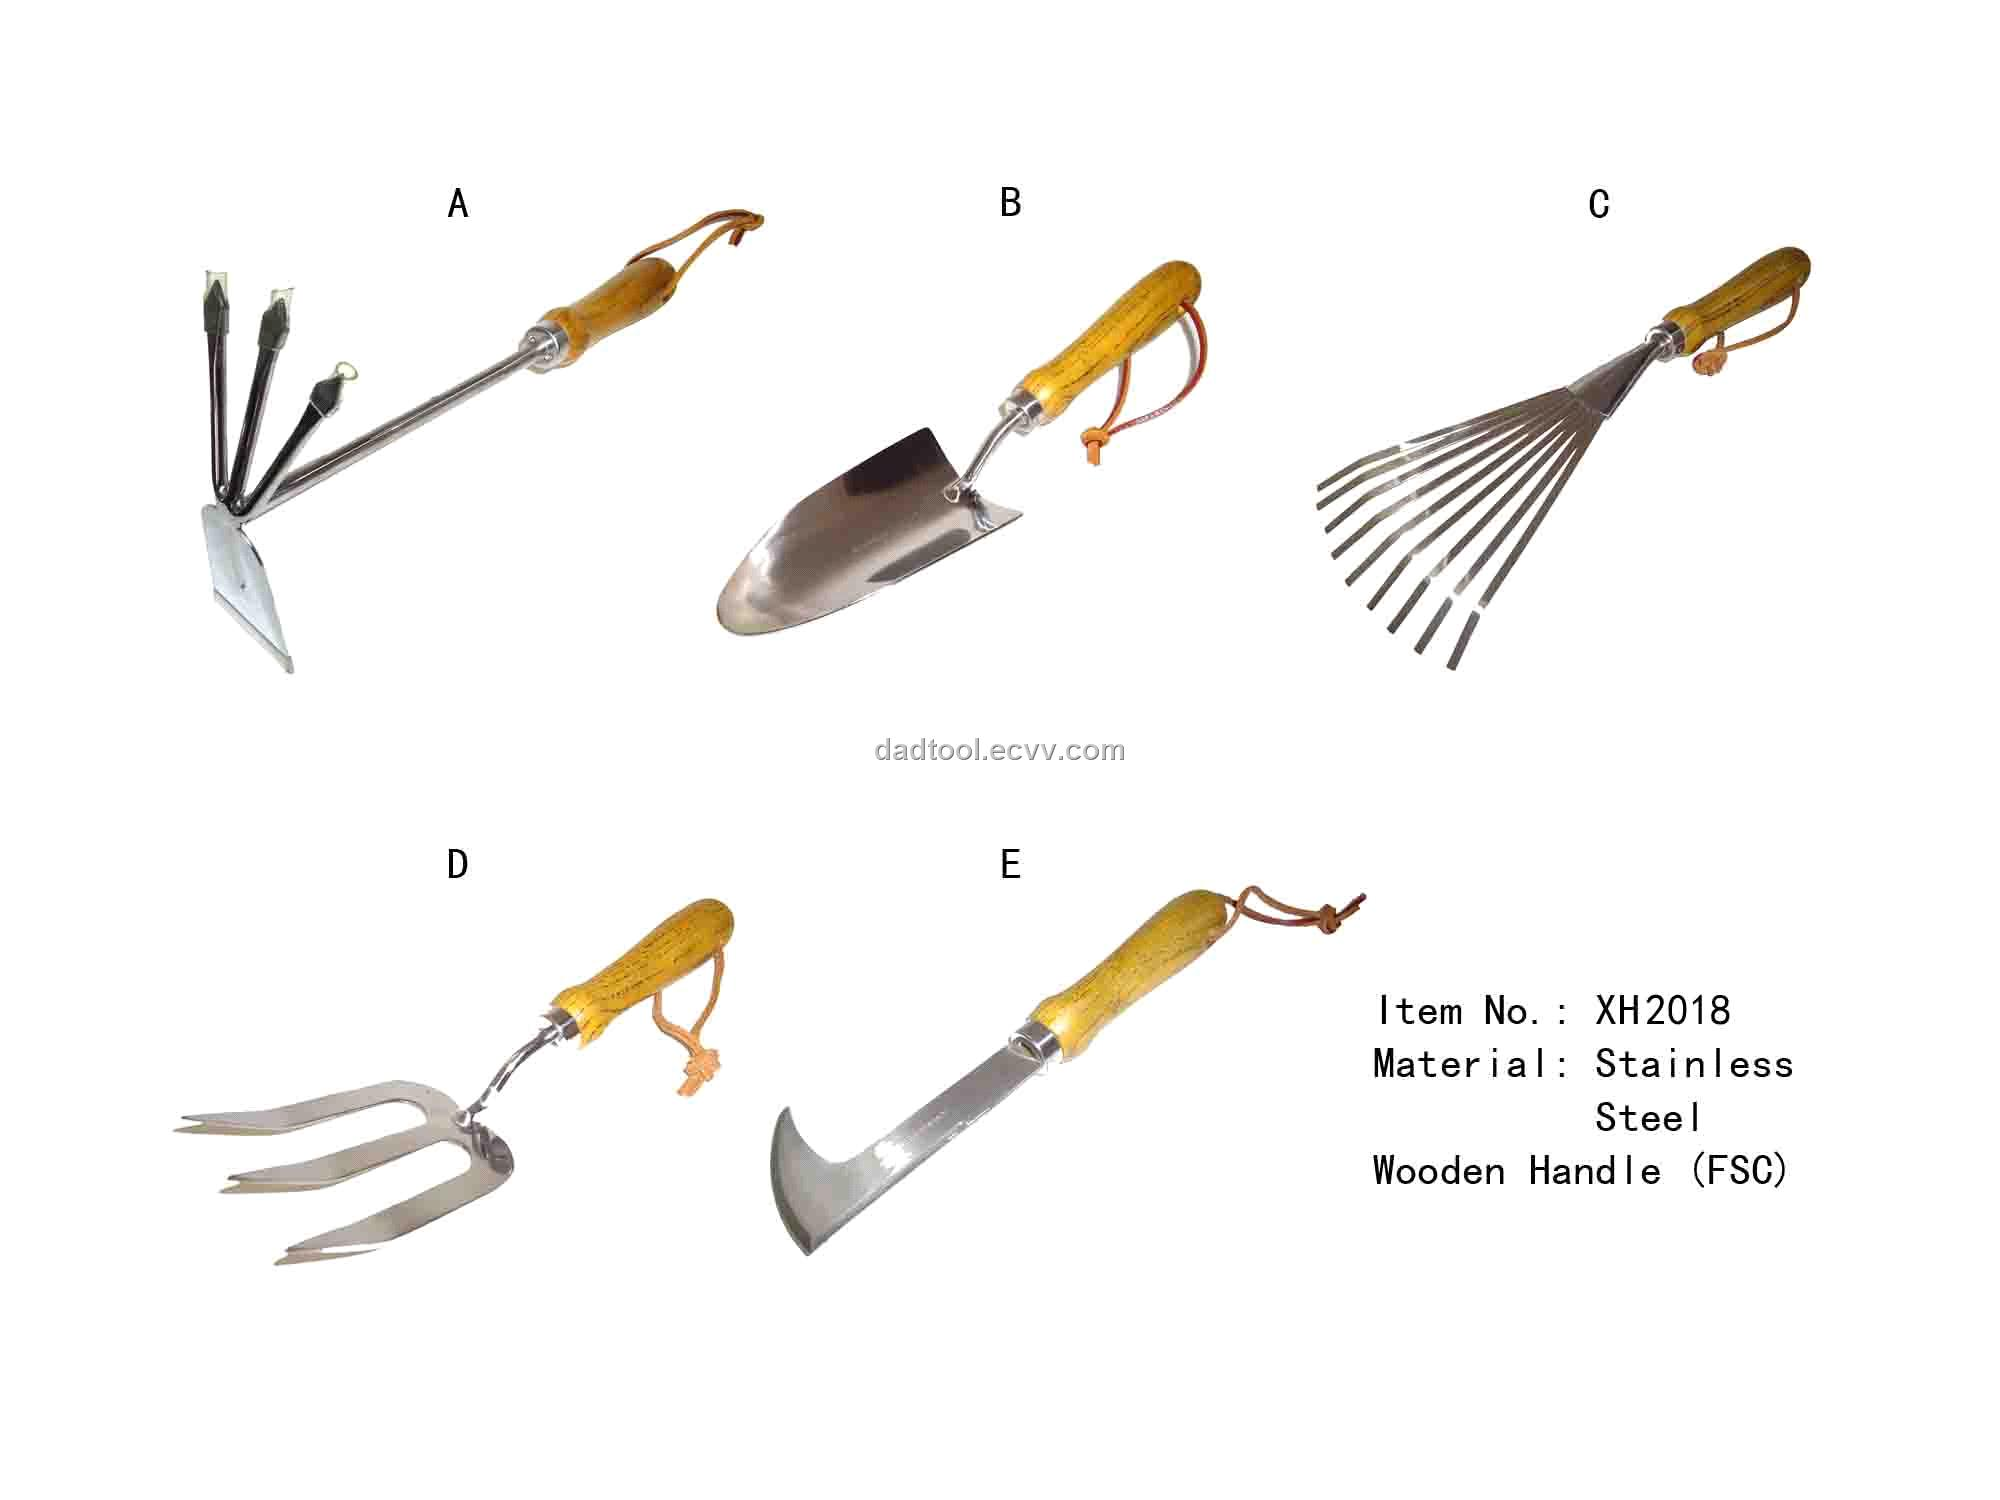 hand tools names and pictures pdf